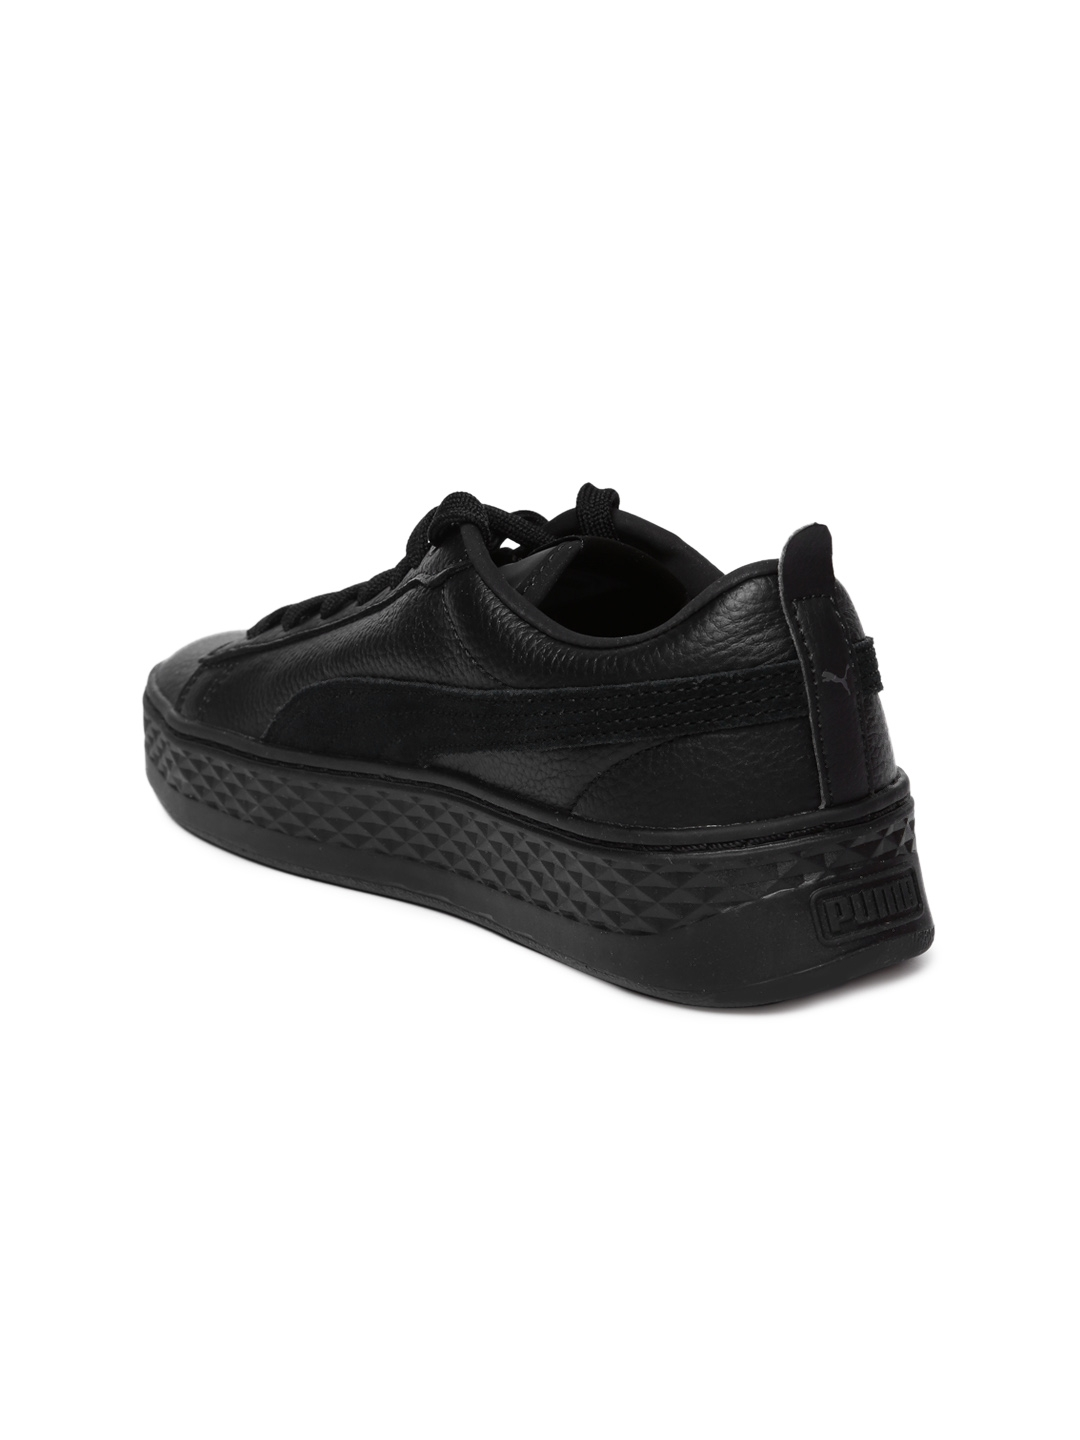 1d552d2d76f564 Buy Puma Women Black Smash Platform Leather Sneakers - Casual Shoes ...